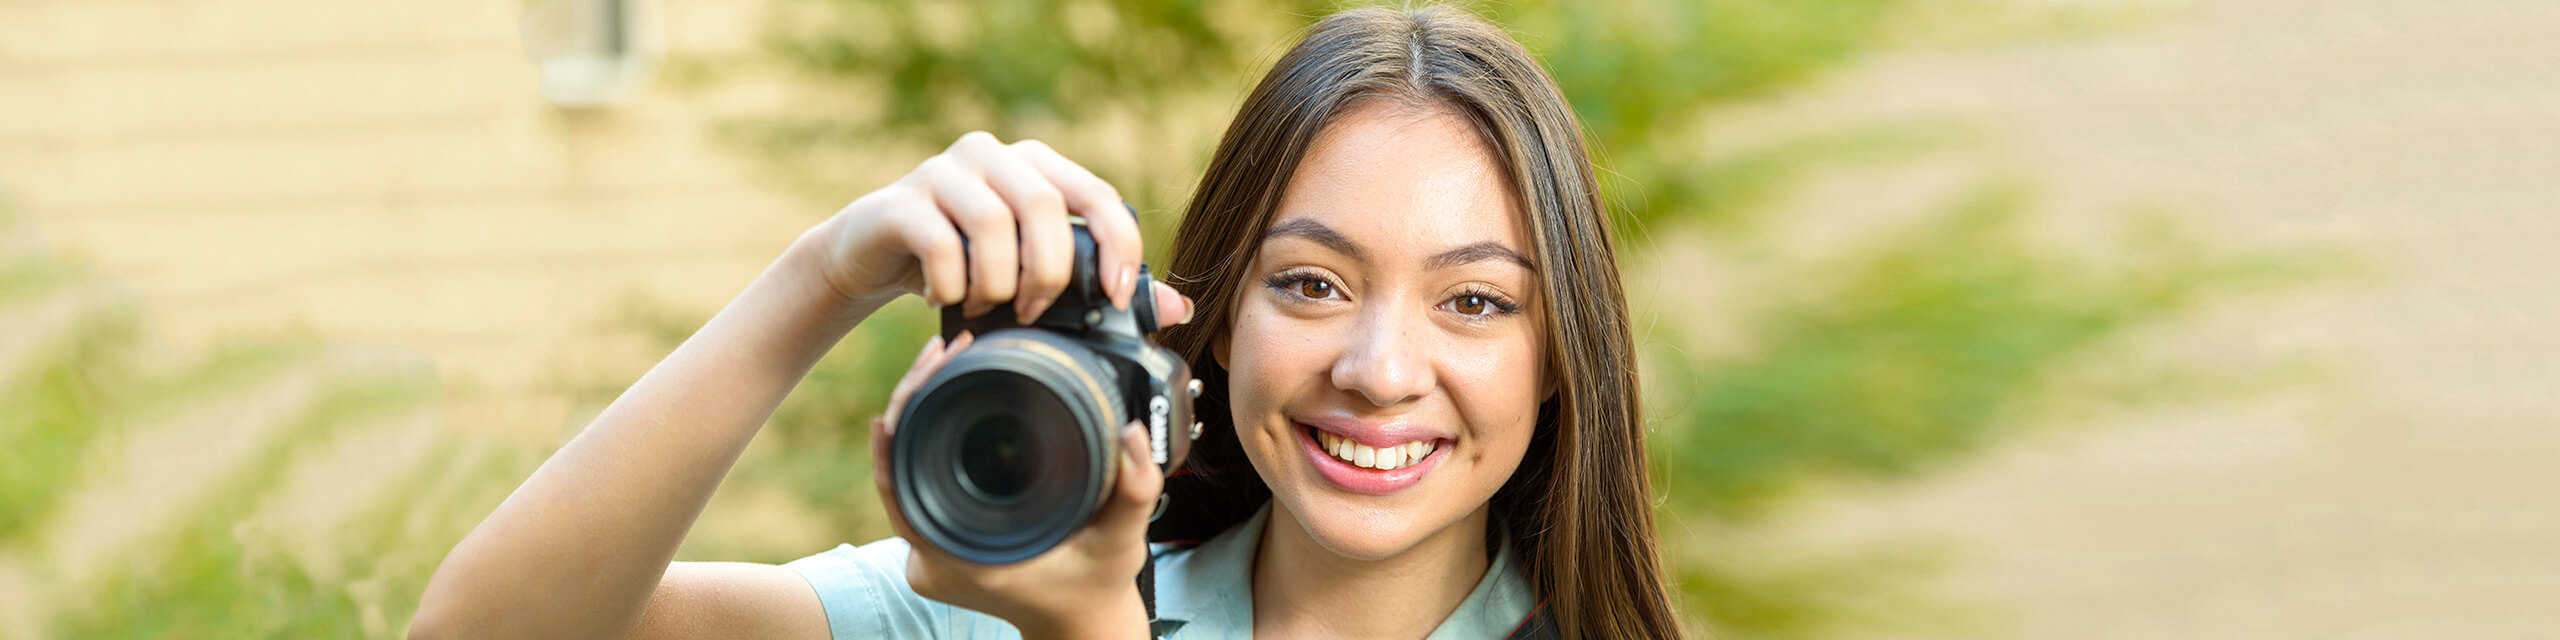 Photography student - Brighton Secondary School